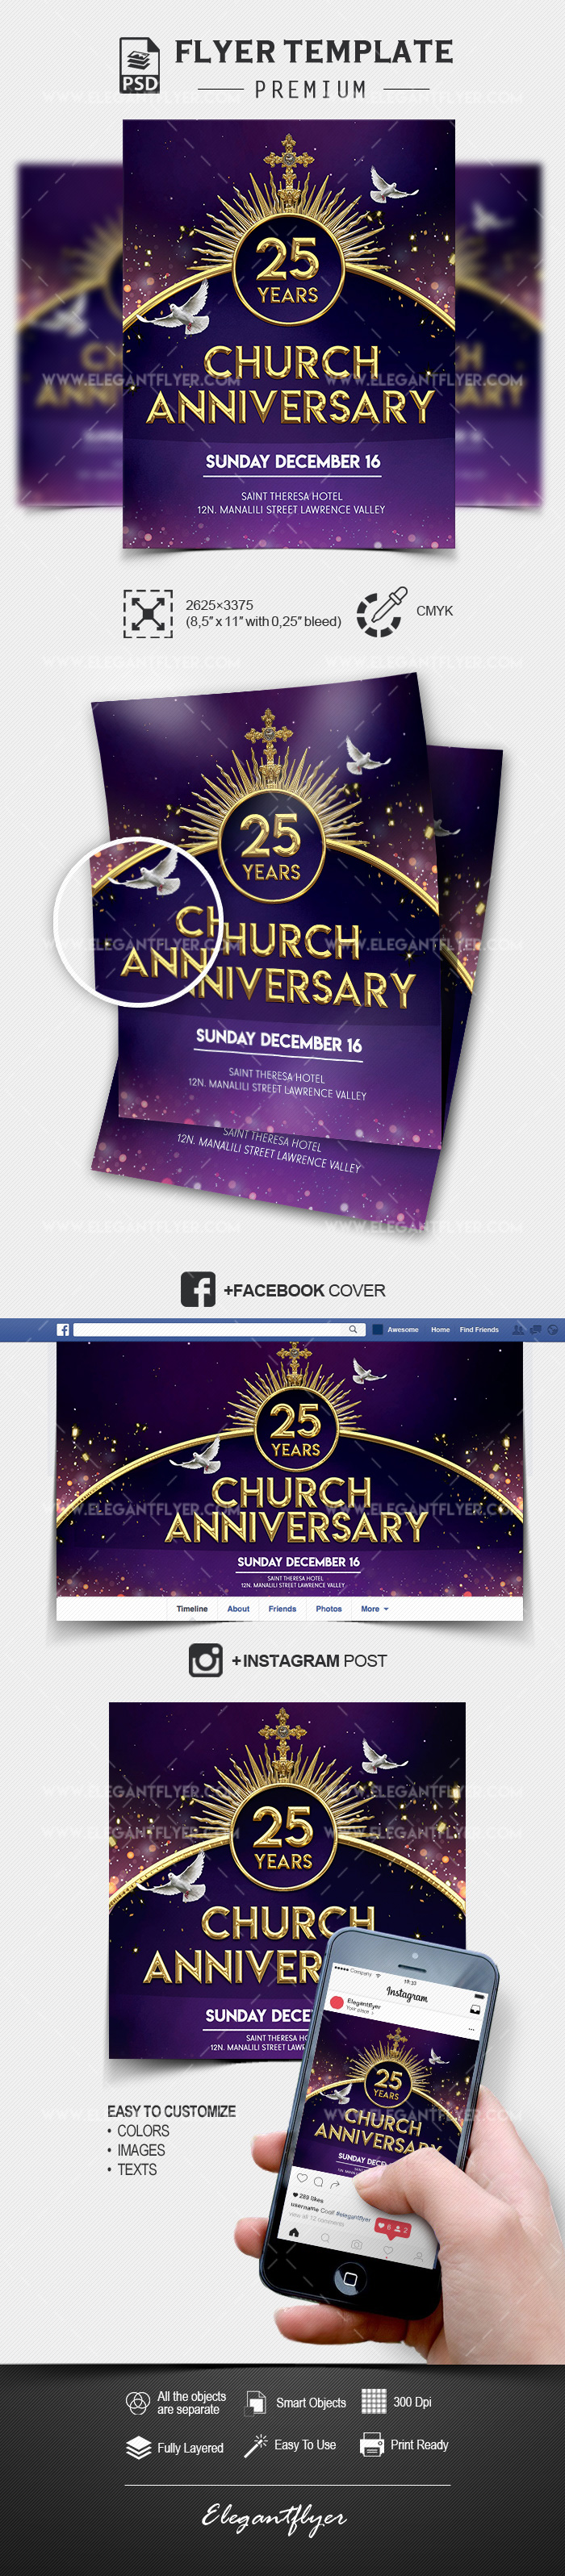 Church Anniversary Flyer PSD Template + Facebook Cover + Instagram Post